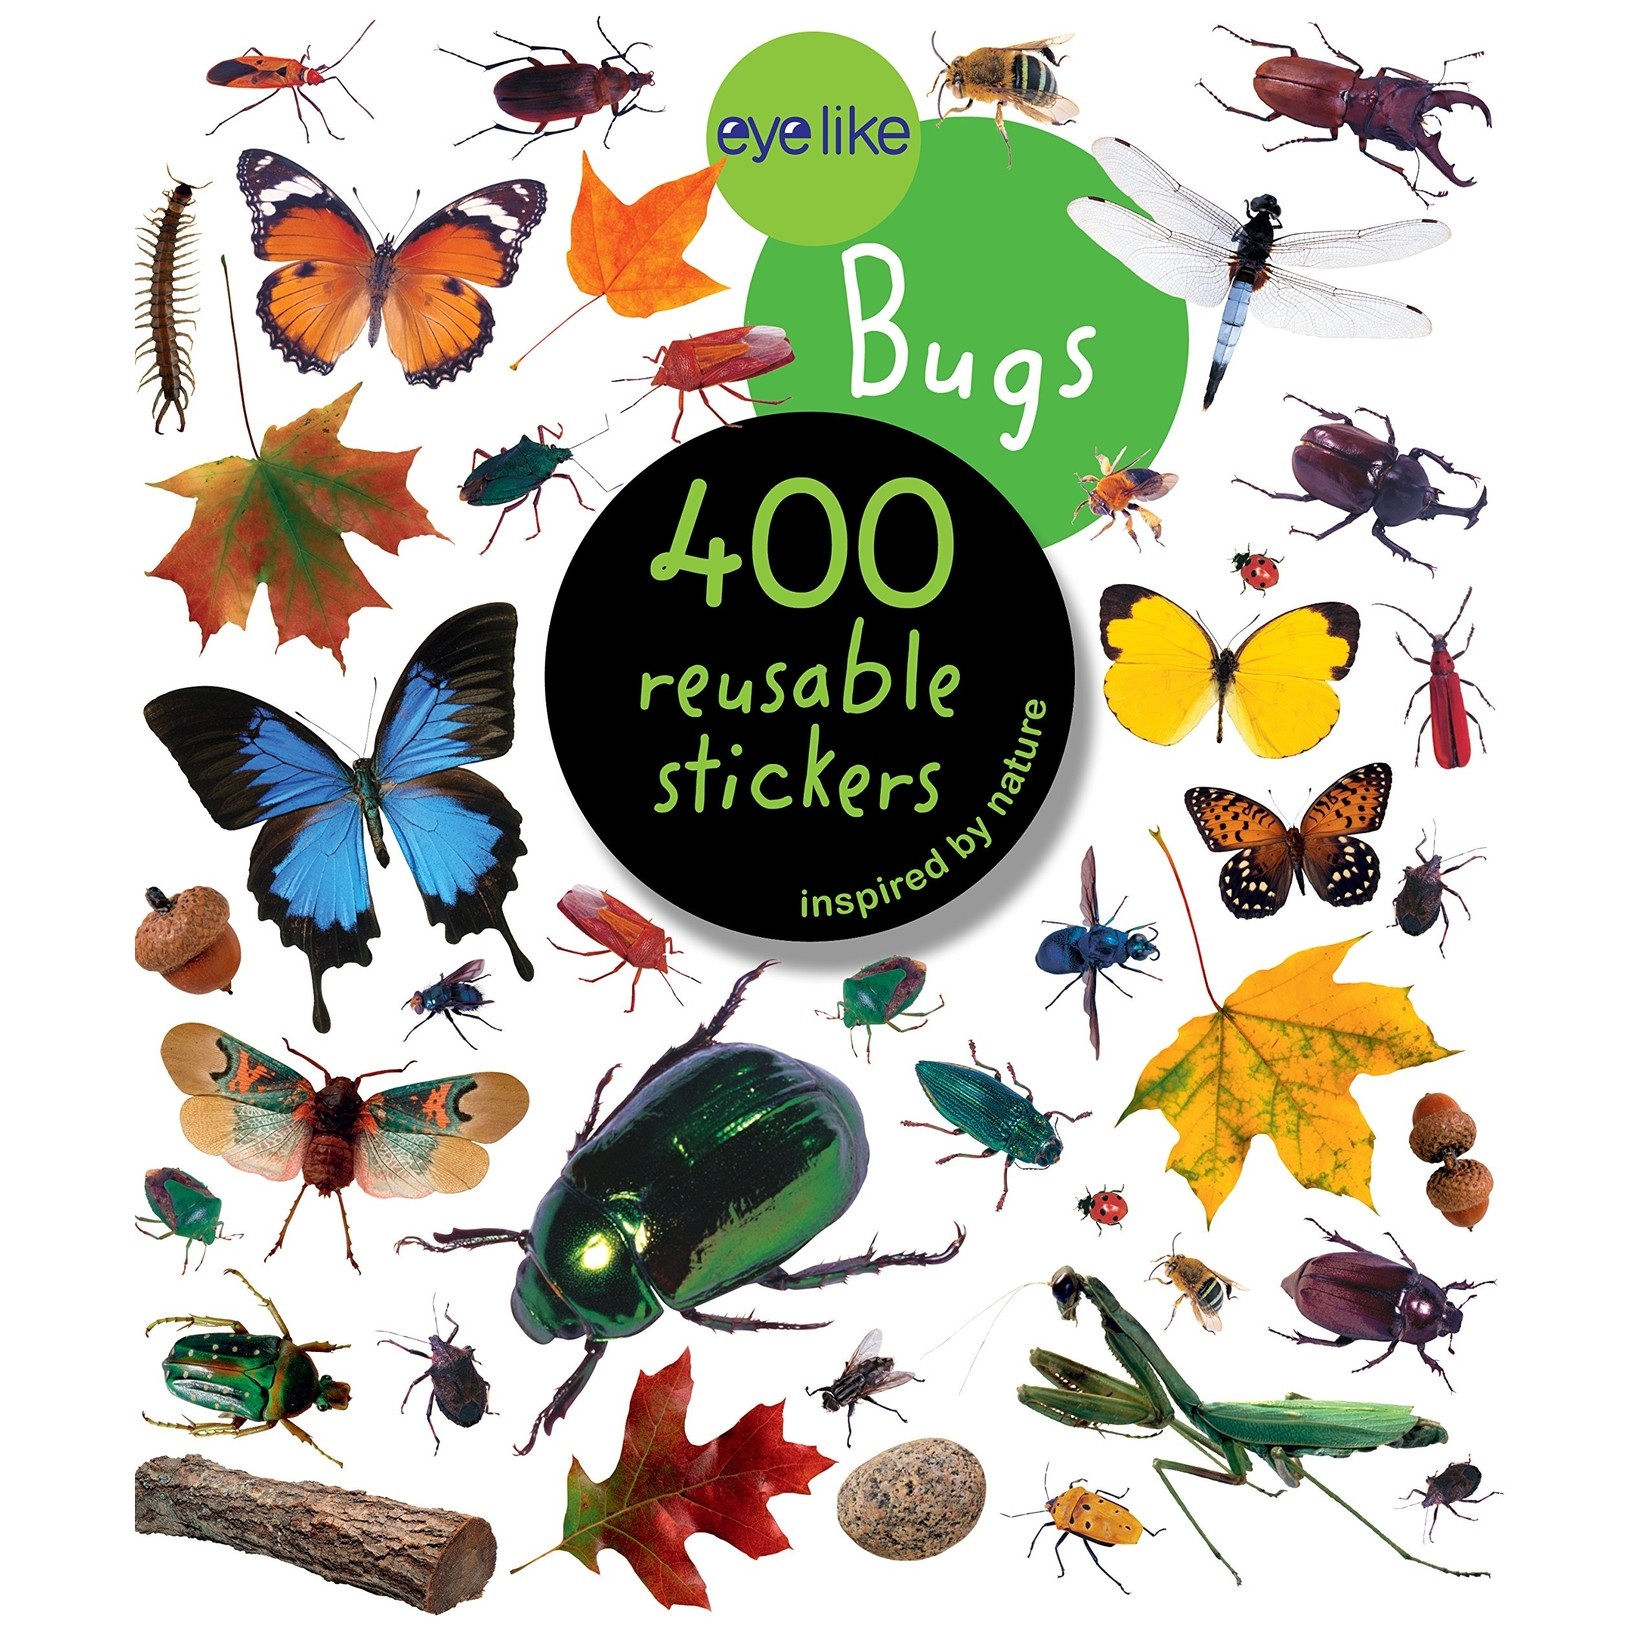 Bugs Reusable Stickers